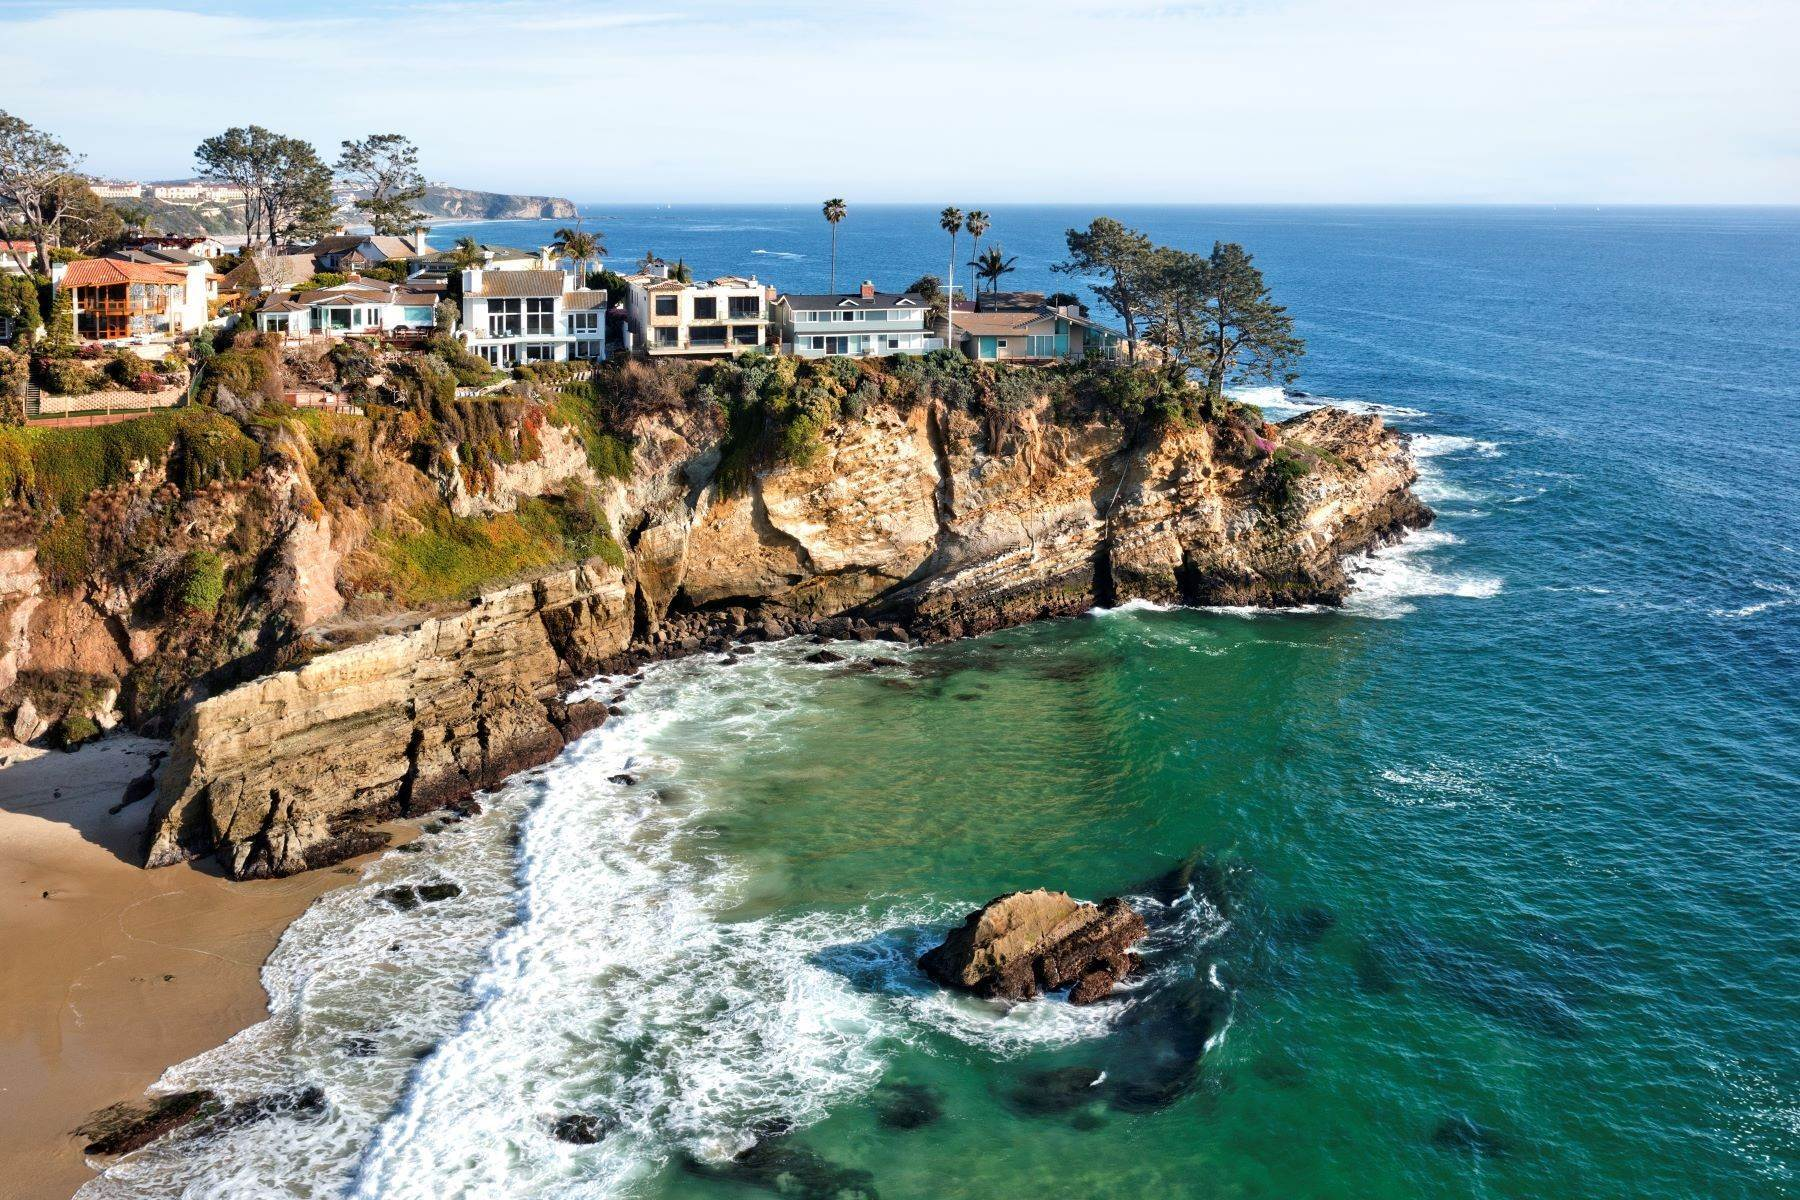 4. Single Family Homes for Sale at 112 South La Senda Drive, Laguna Beach, CA 92651 112 South La Senda Drive Laguna Beach, California 92651 United States